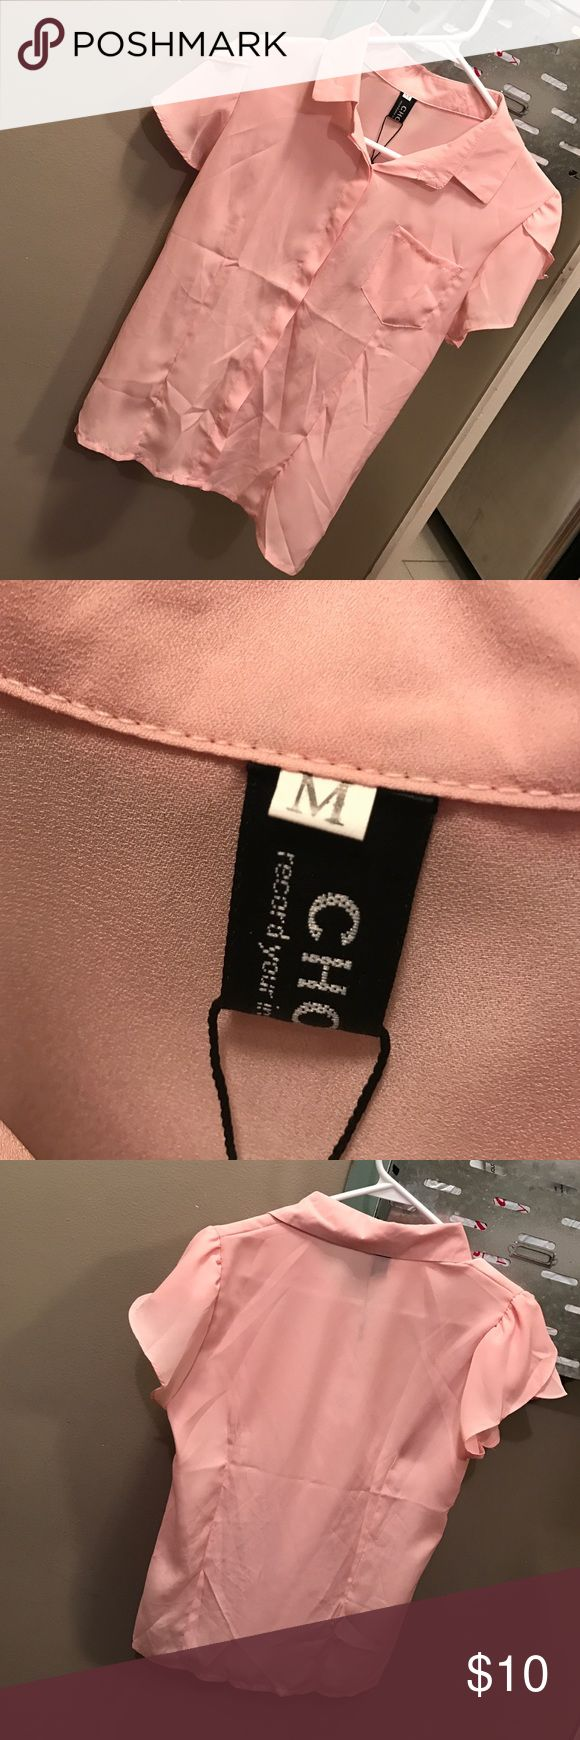 NWT Pink Blouse Brand-new with tags, never worn. Purchased from a boutique in so ho New York City for $36, priced to sell because I'm moving. Tops Blouses